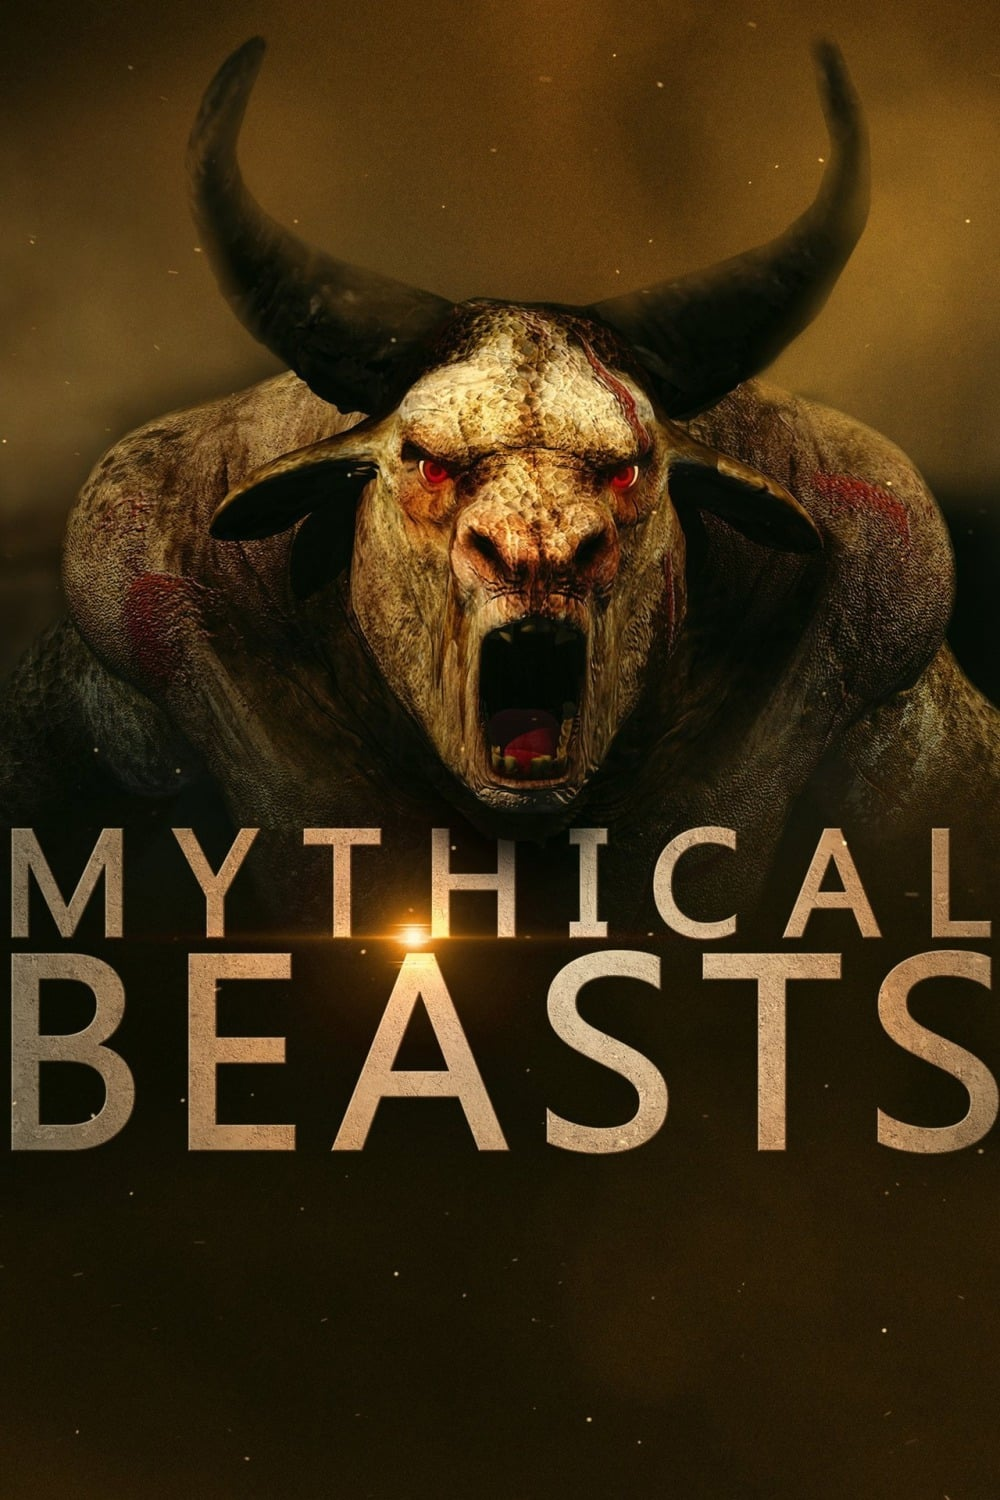 Mythical Beasts TV Shows About Myth